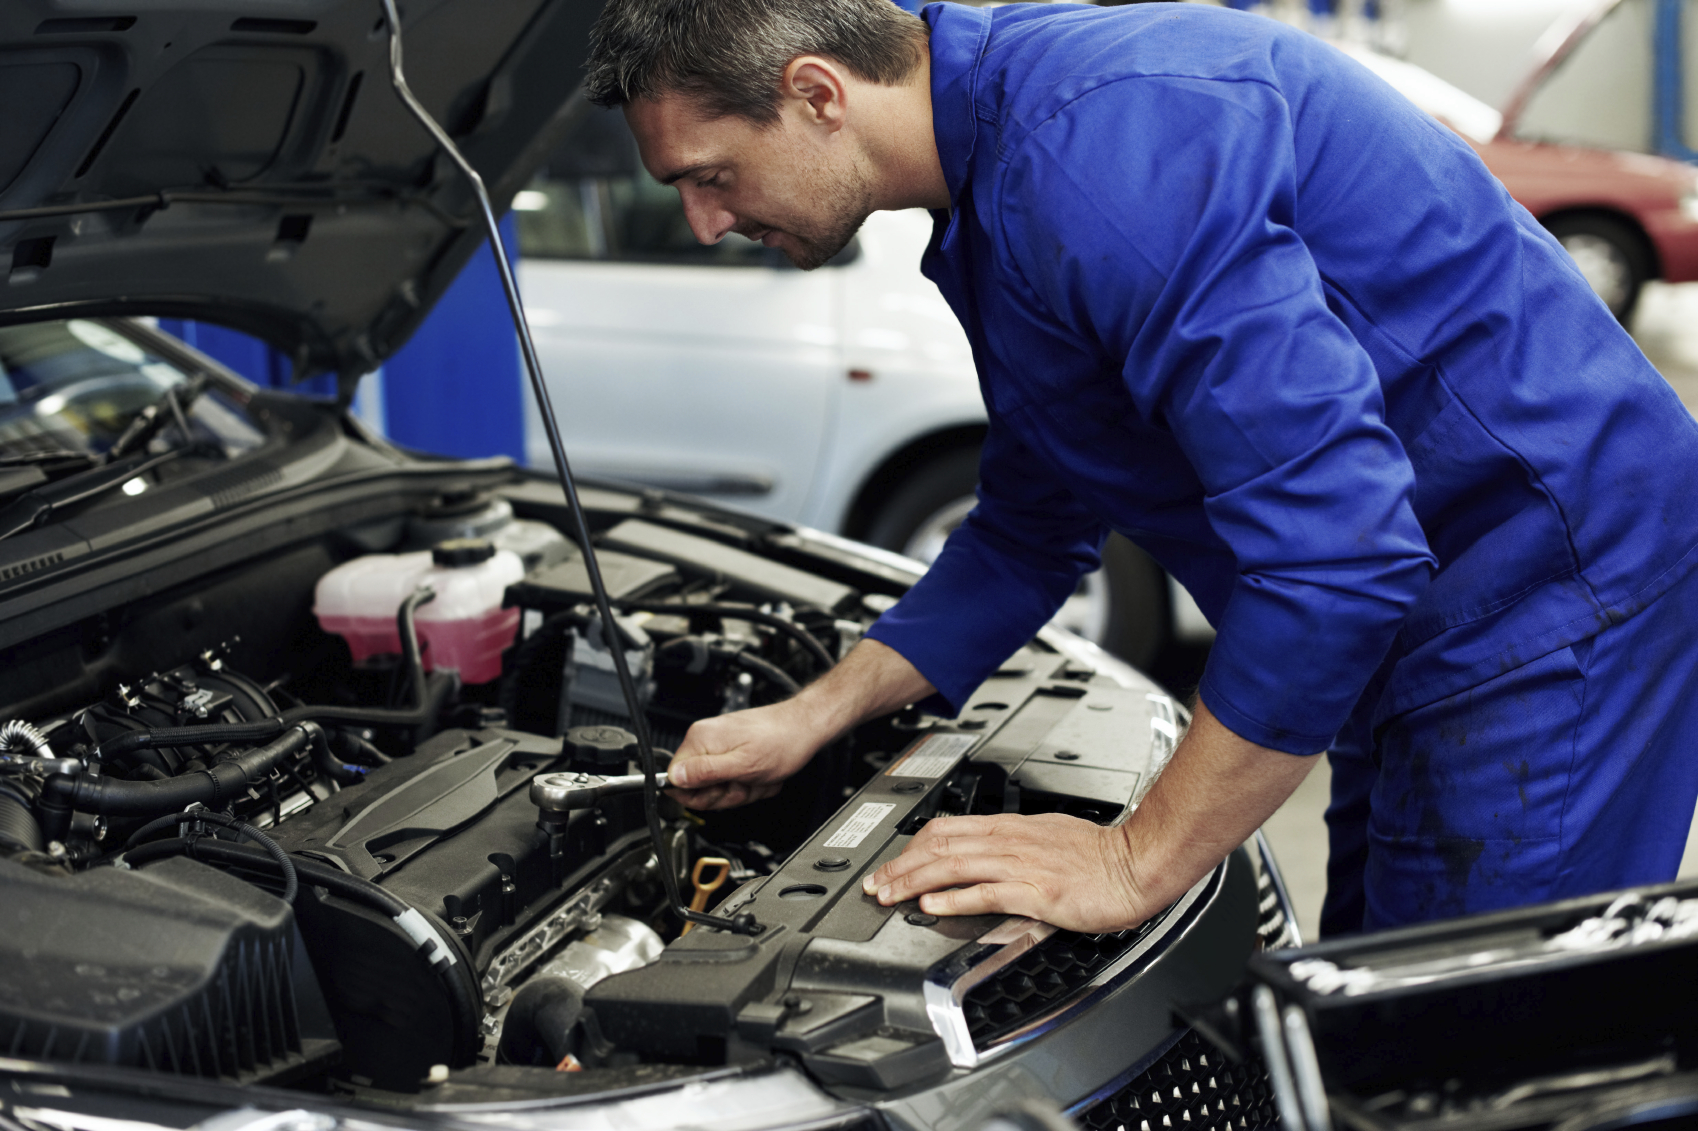 Accomplished mechanic tightening a sparkplug into place during a service at his workshop